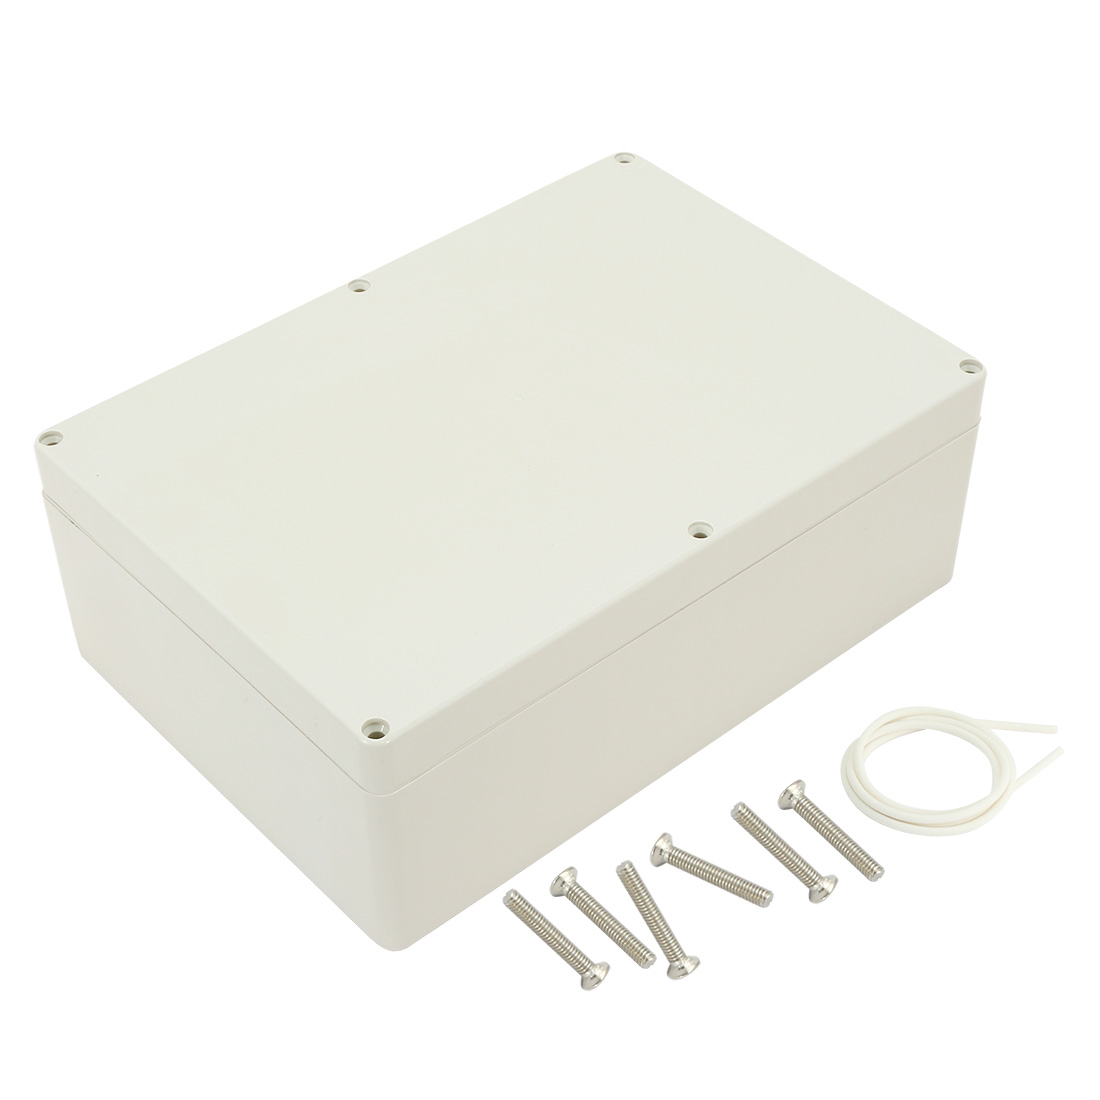 "10.4""x7.2""x3.7""(263mmx182mmx95mm) ABS Junction Box Universal Electric Project Enclosure"